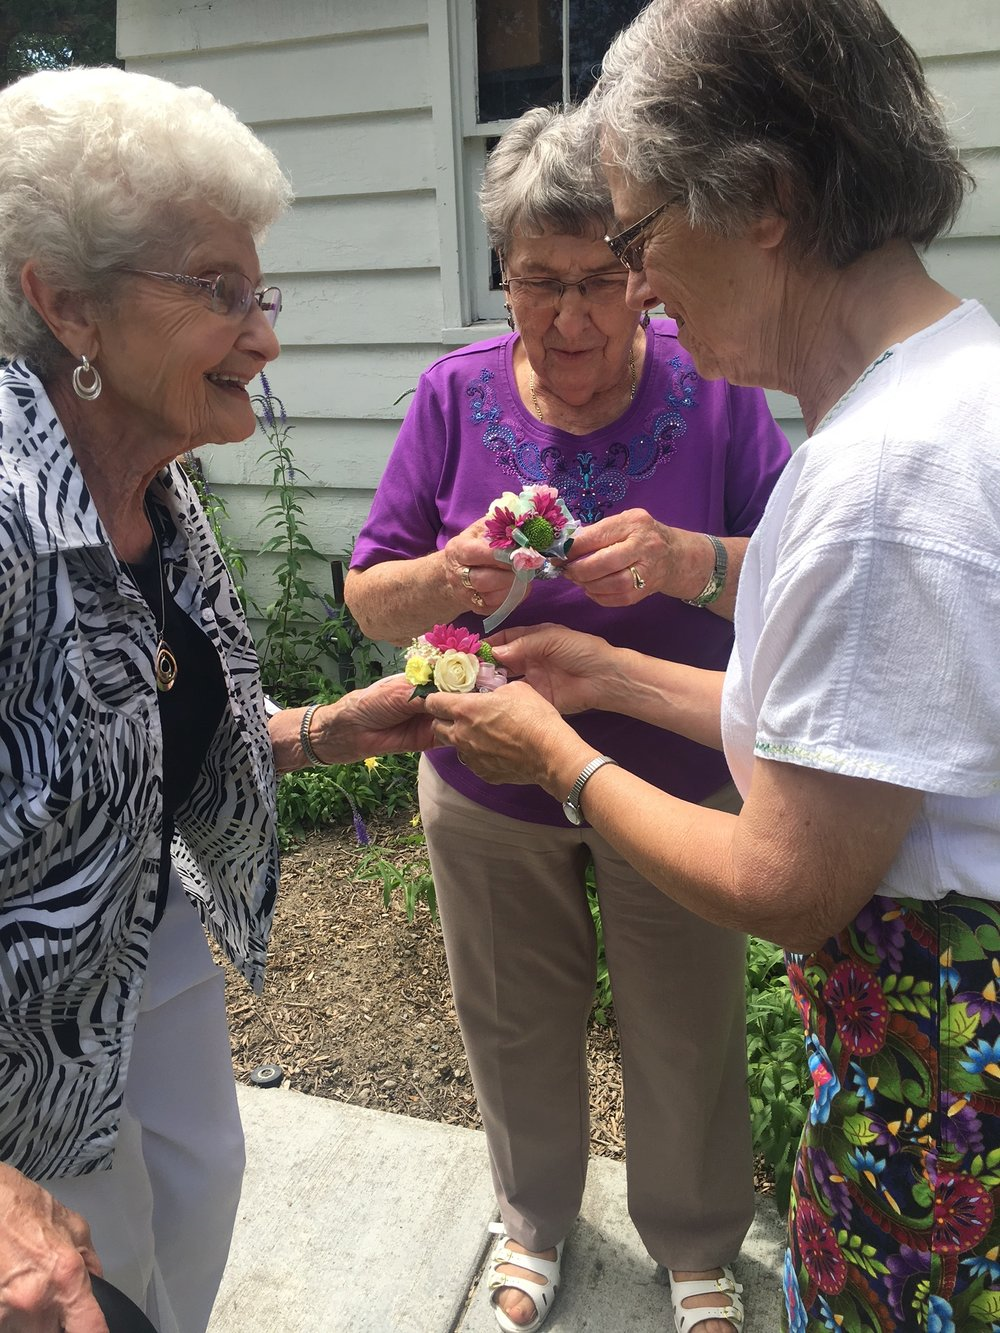 Sister Mary presents corsages to Cecelia Jirges and Irene Wolf in honor of their 20 years of volunteerism with Angela's Piazza.